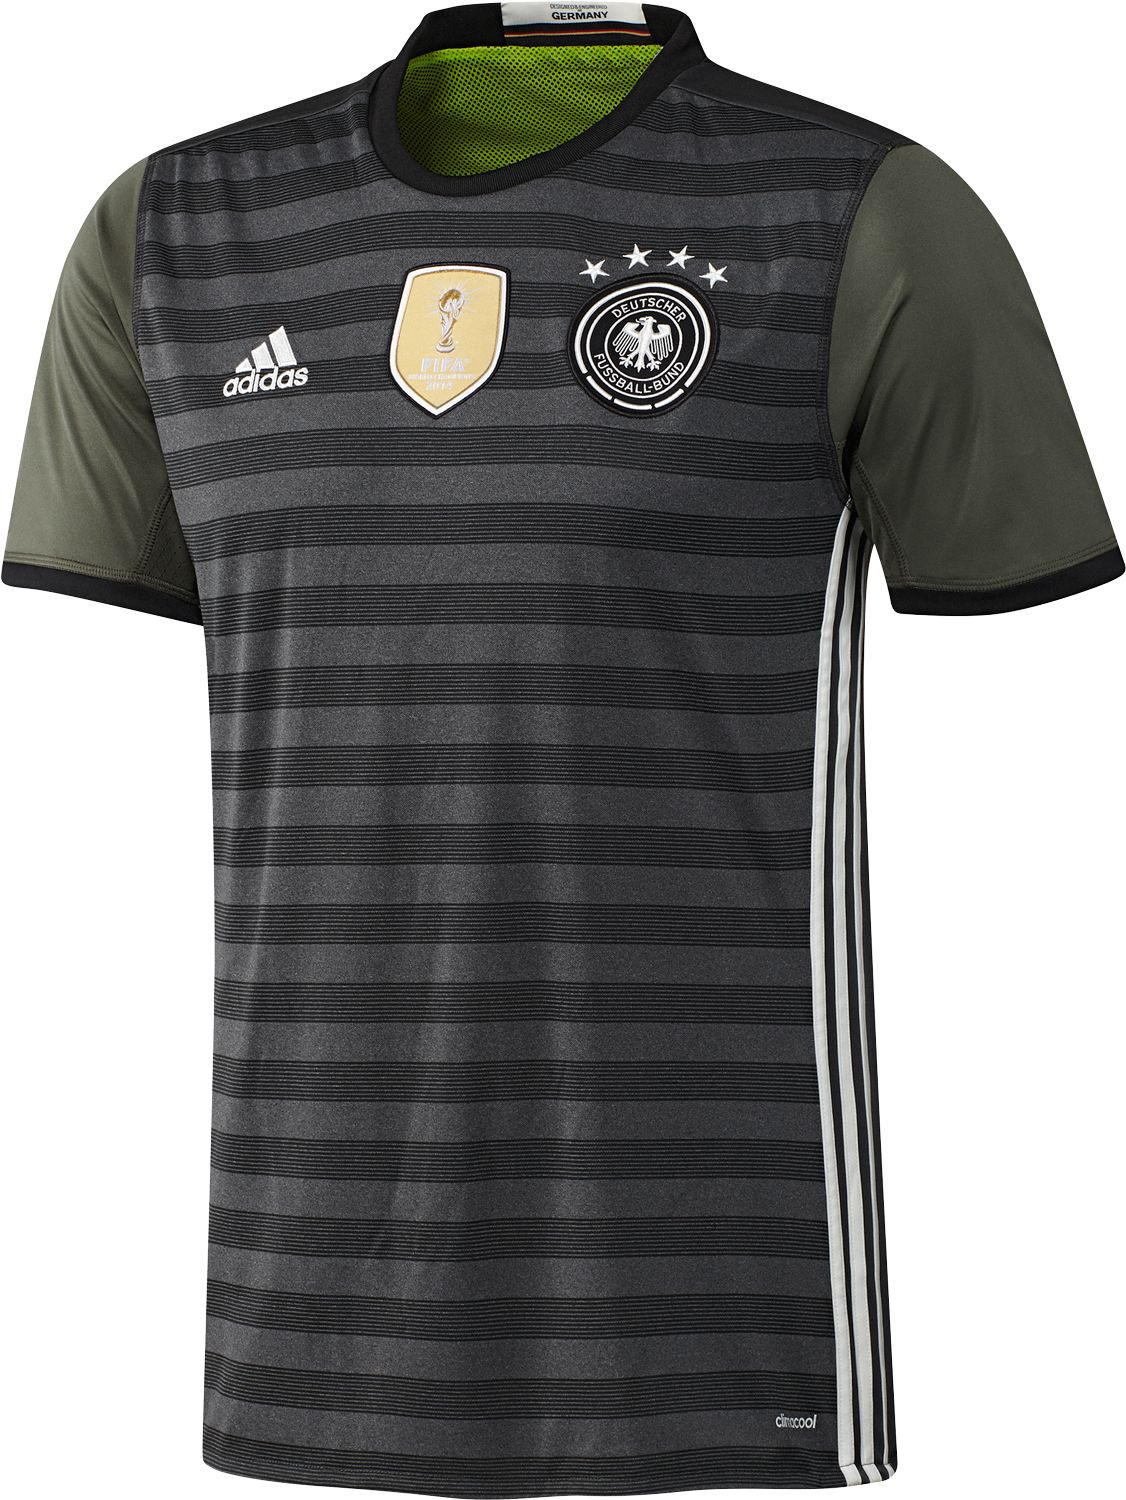 Adidas Youth Euro 2016 Germany Replica Away Jersey by Adidas